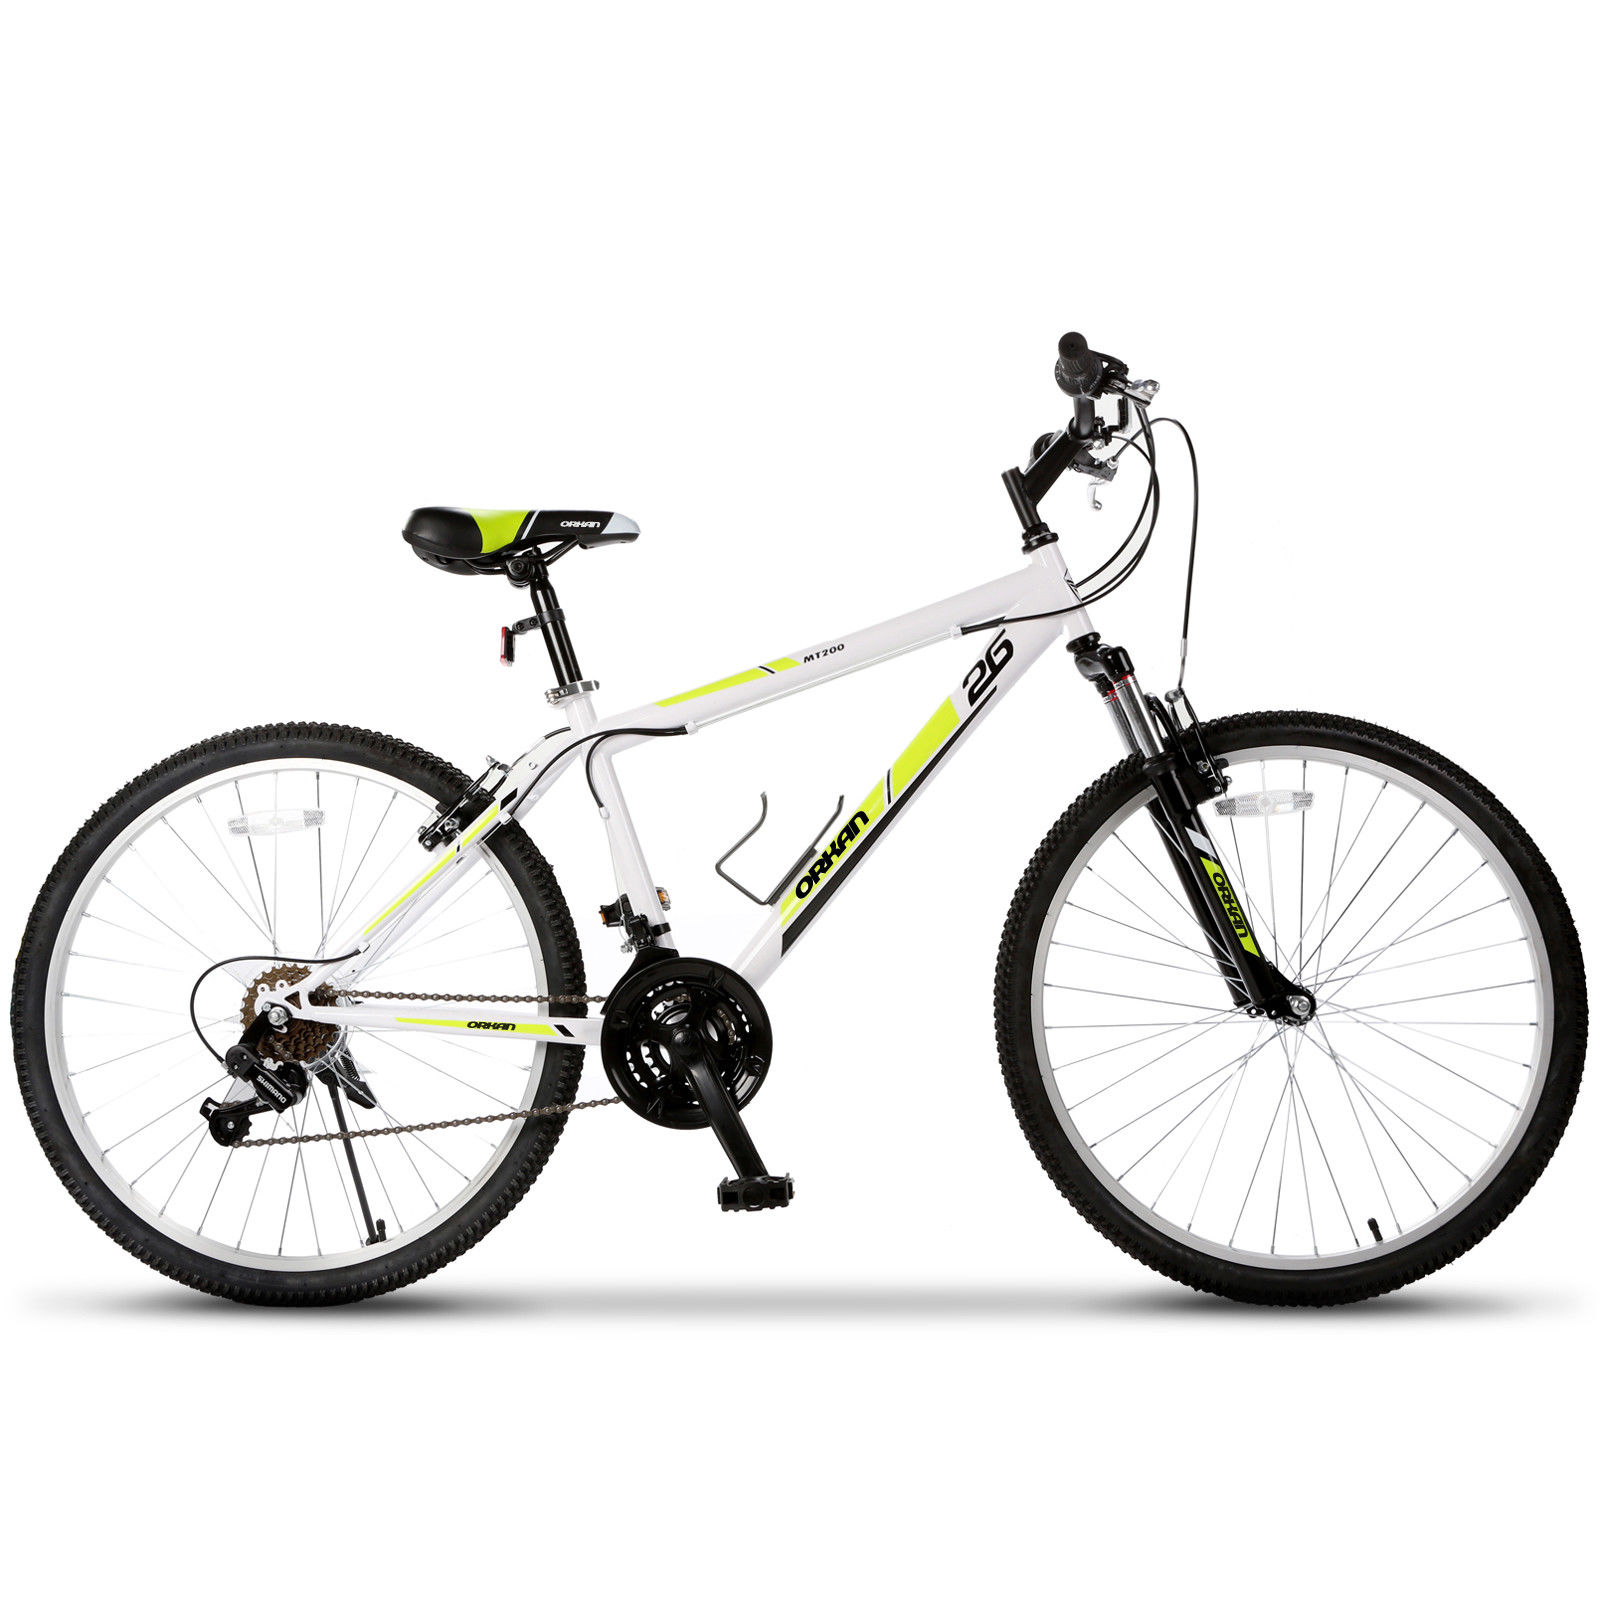 "Murtisol 26"" Folding Mountain Bike 7 Speed Foldable Commuter Bicycle Full Suspension & Shimano Derailleur"